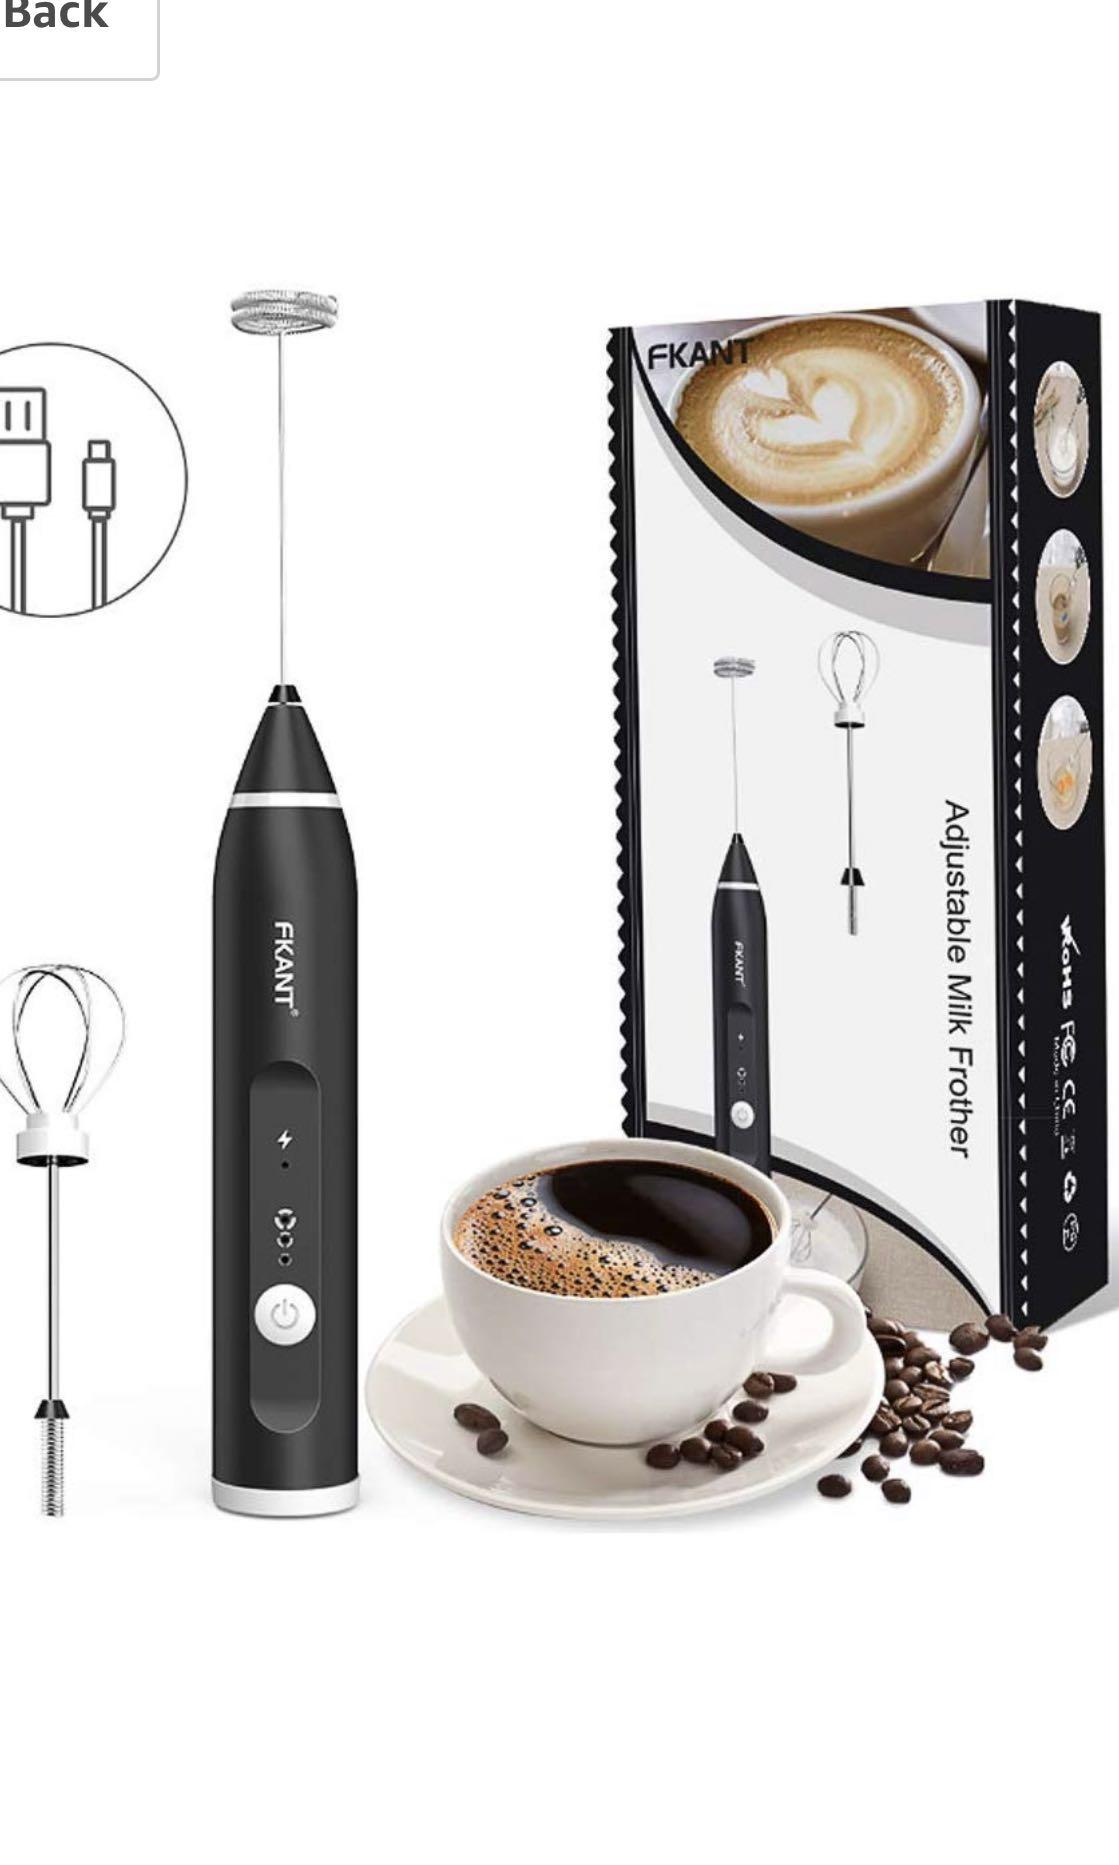 Coffee, Tea & Espresso Makers Milk Frother Cappuccino Drinks Coffee Cream Electric Whisk Latte Maker Kitchen